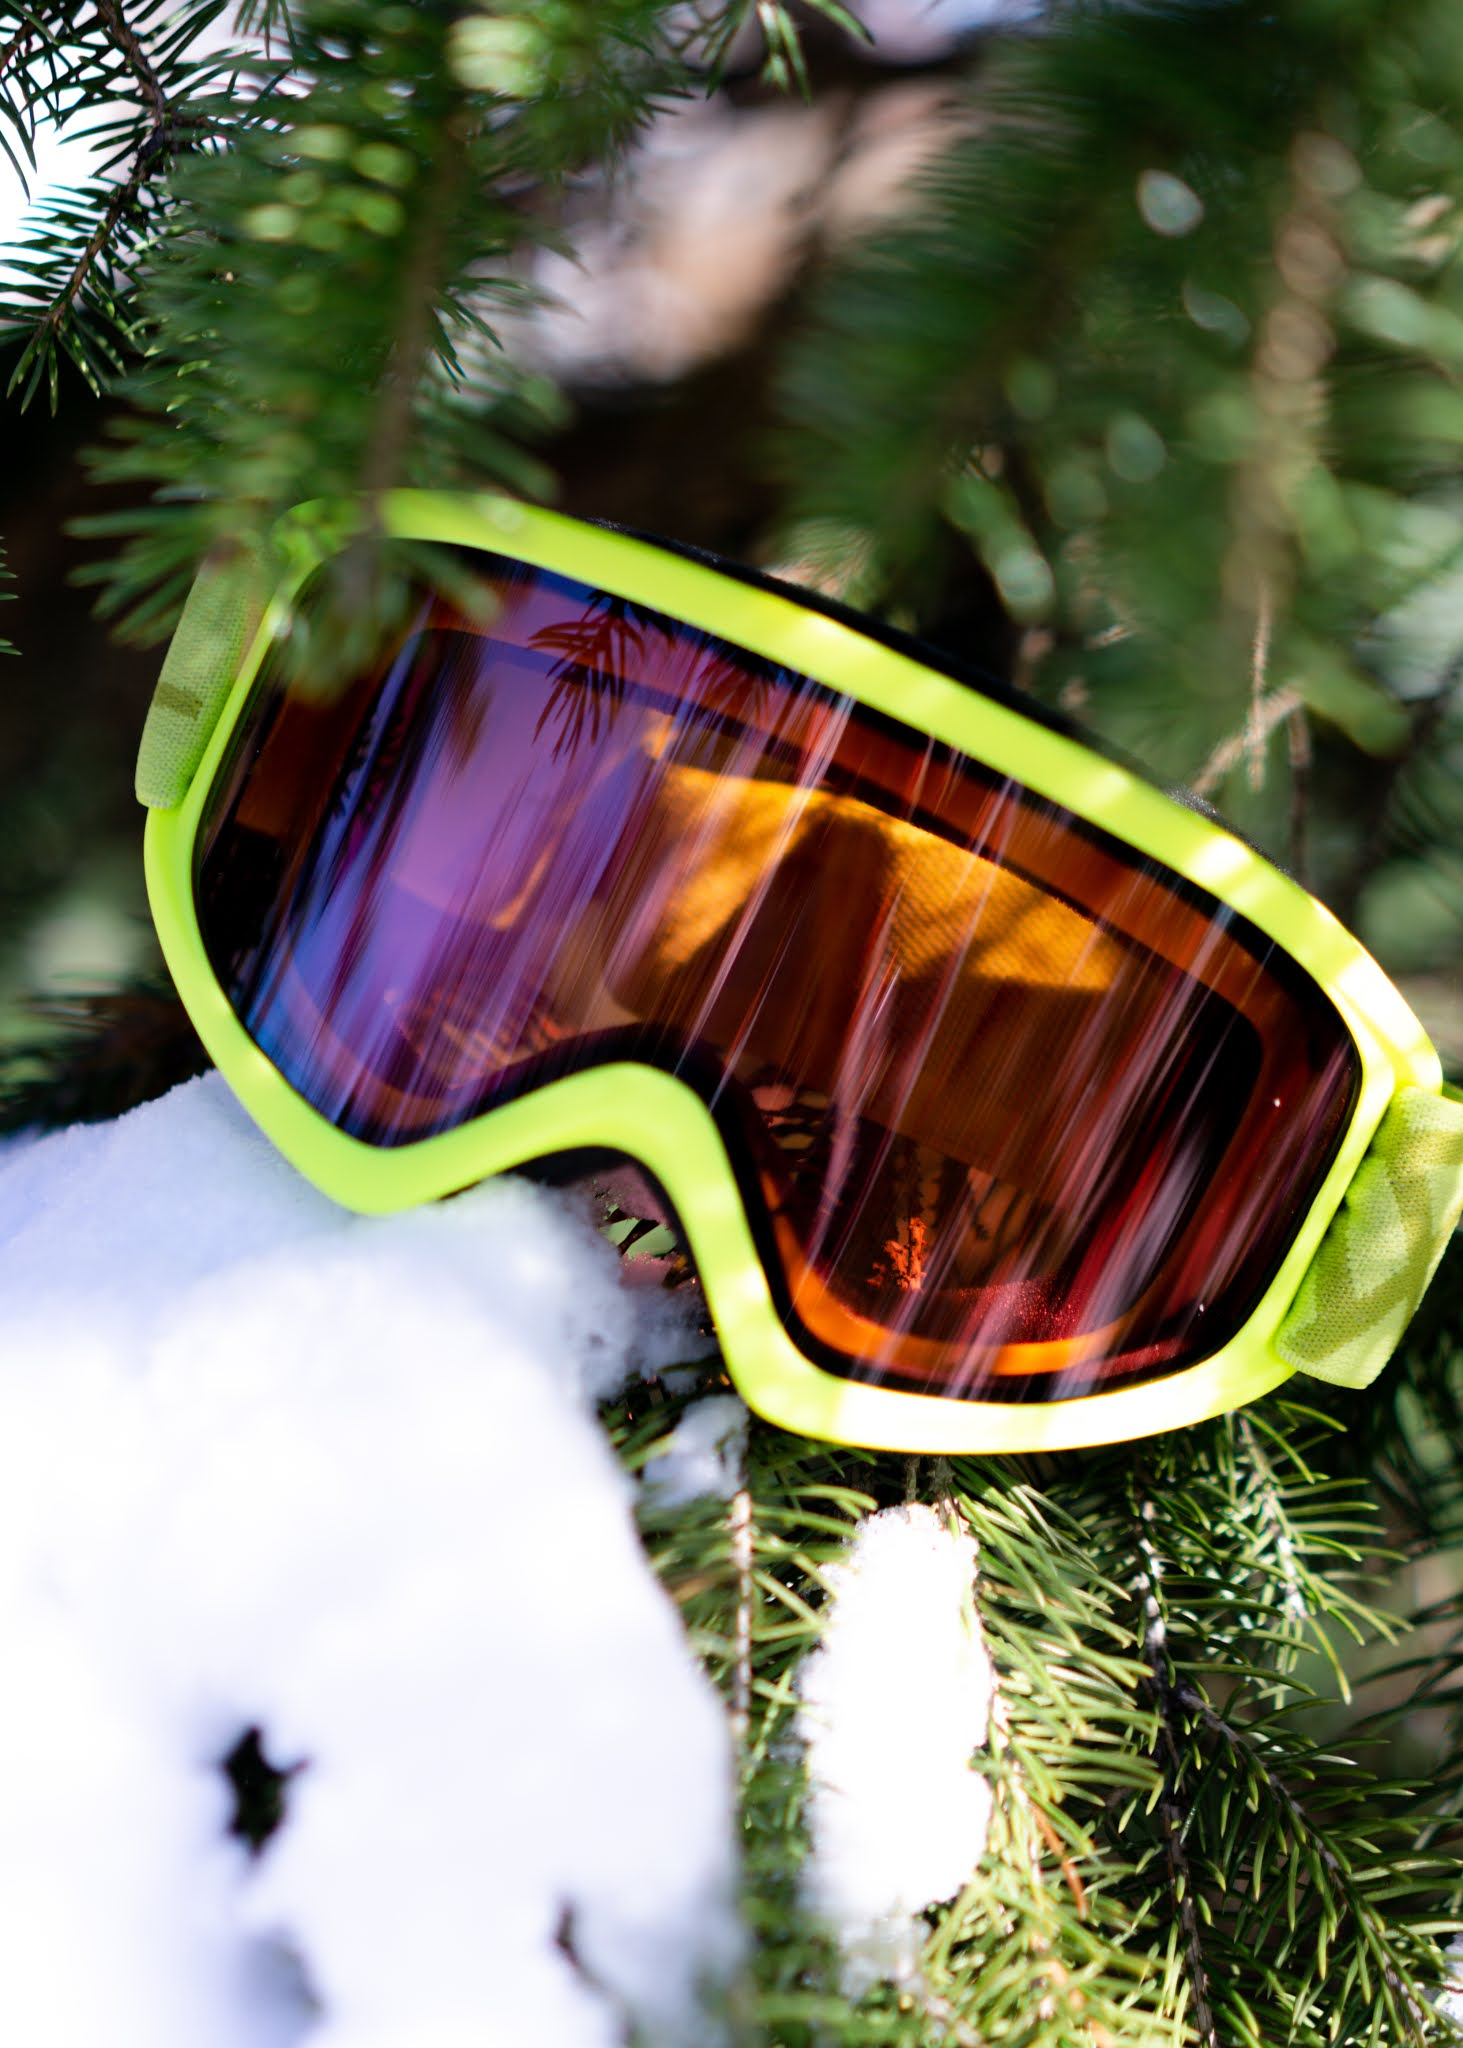 Green Bolle Ski Goggles for Winter Sports